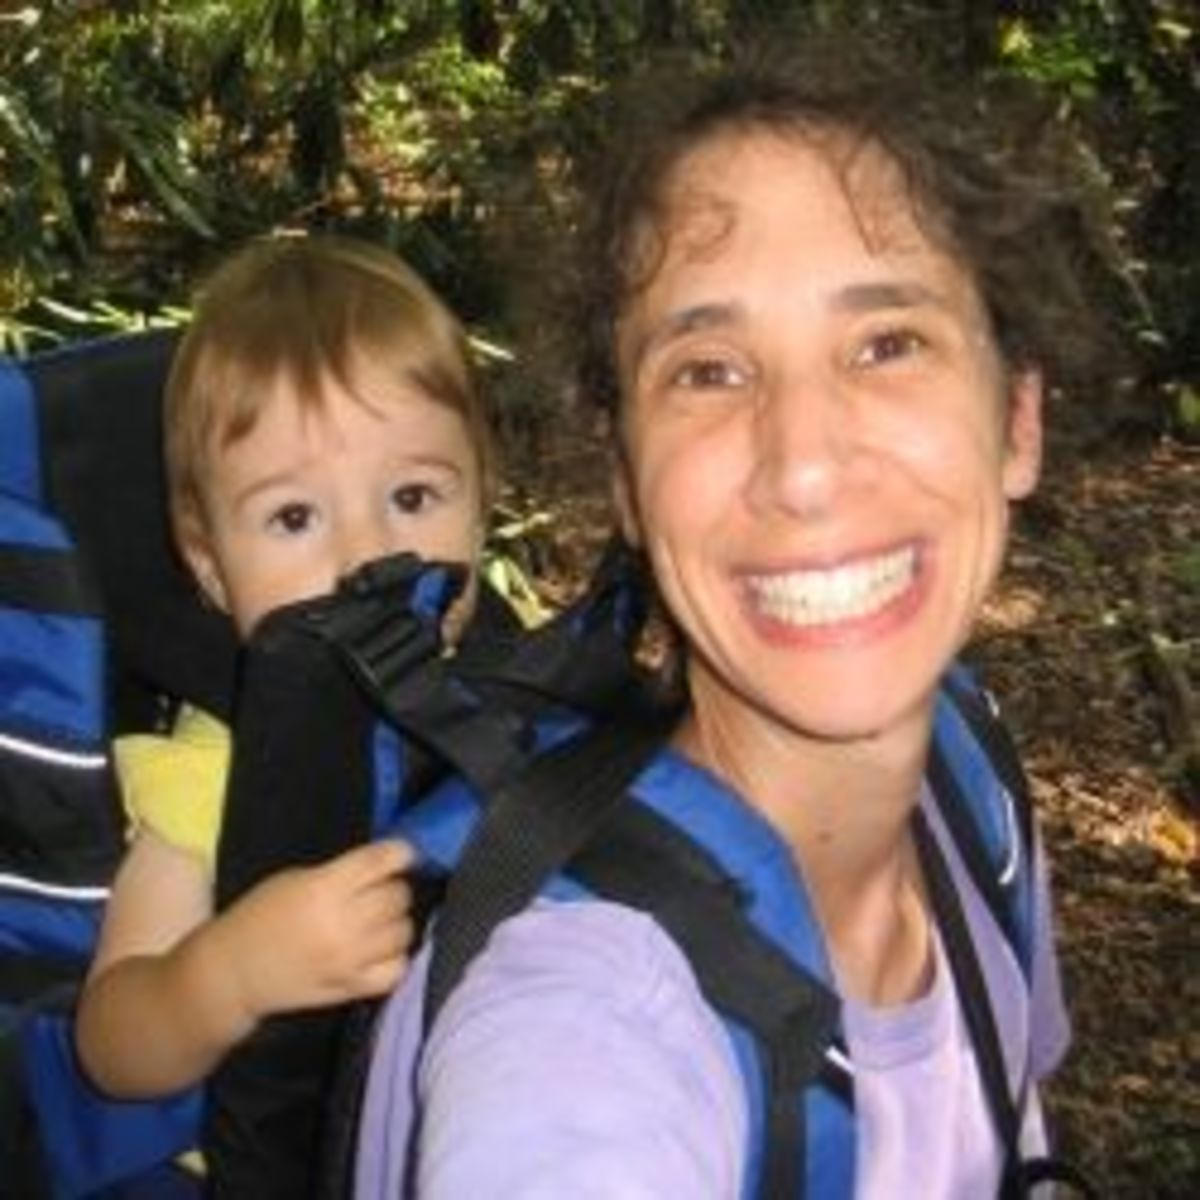 Hiking with my then-one-year-old in a backpack baby carrier.